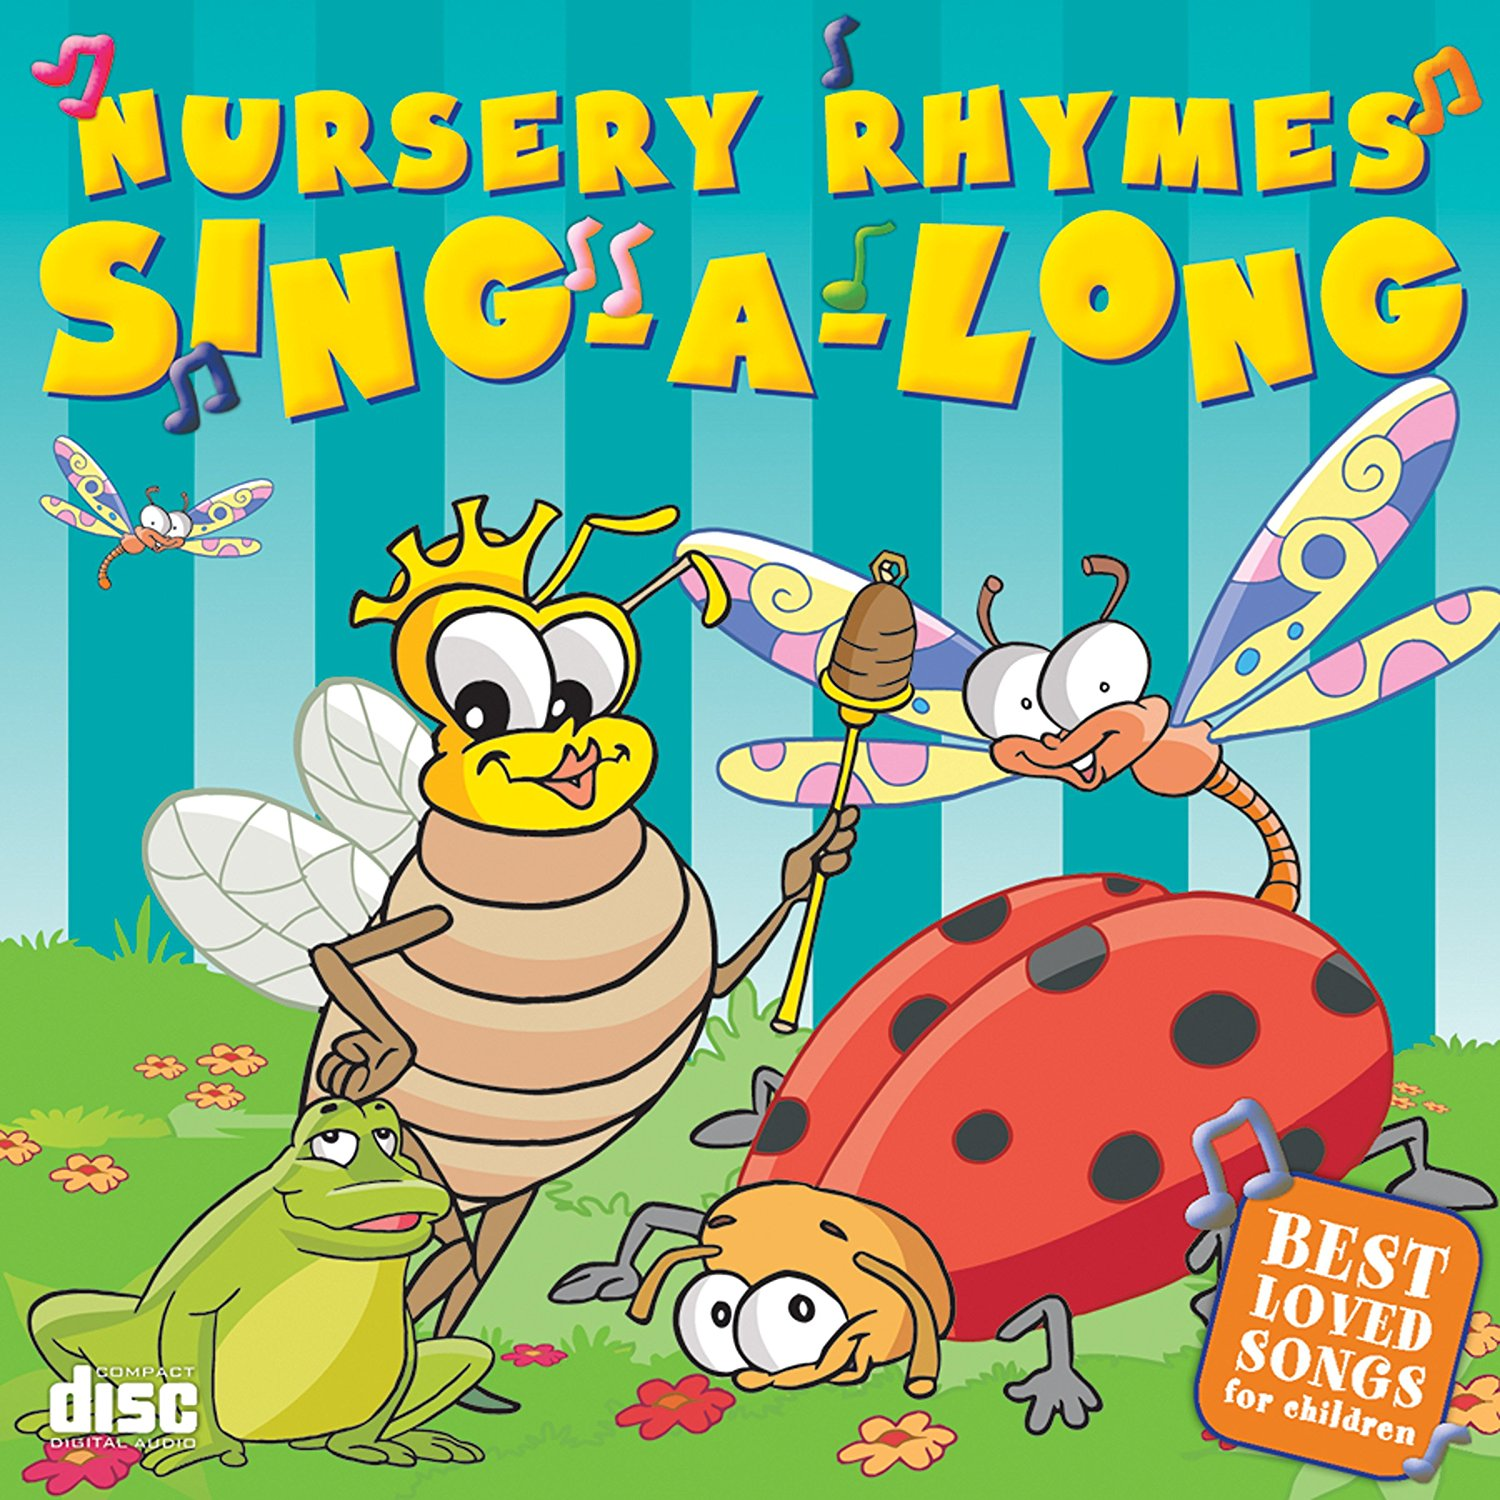 34 Nursery Rhymes Sing-a-longs - Best Loved Songs For Children by Various Artists